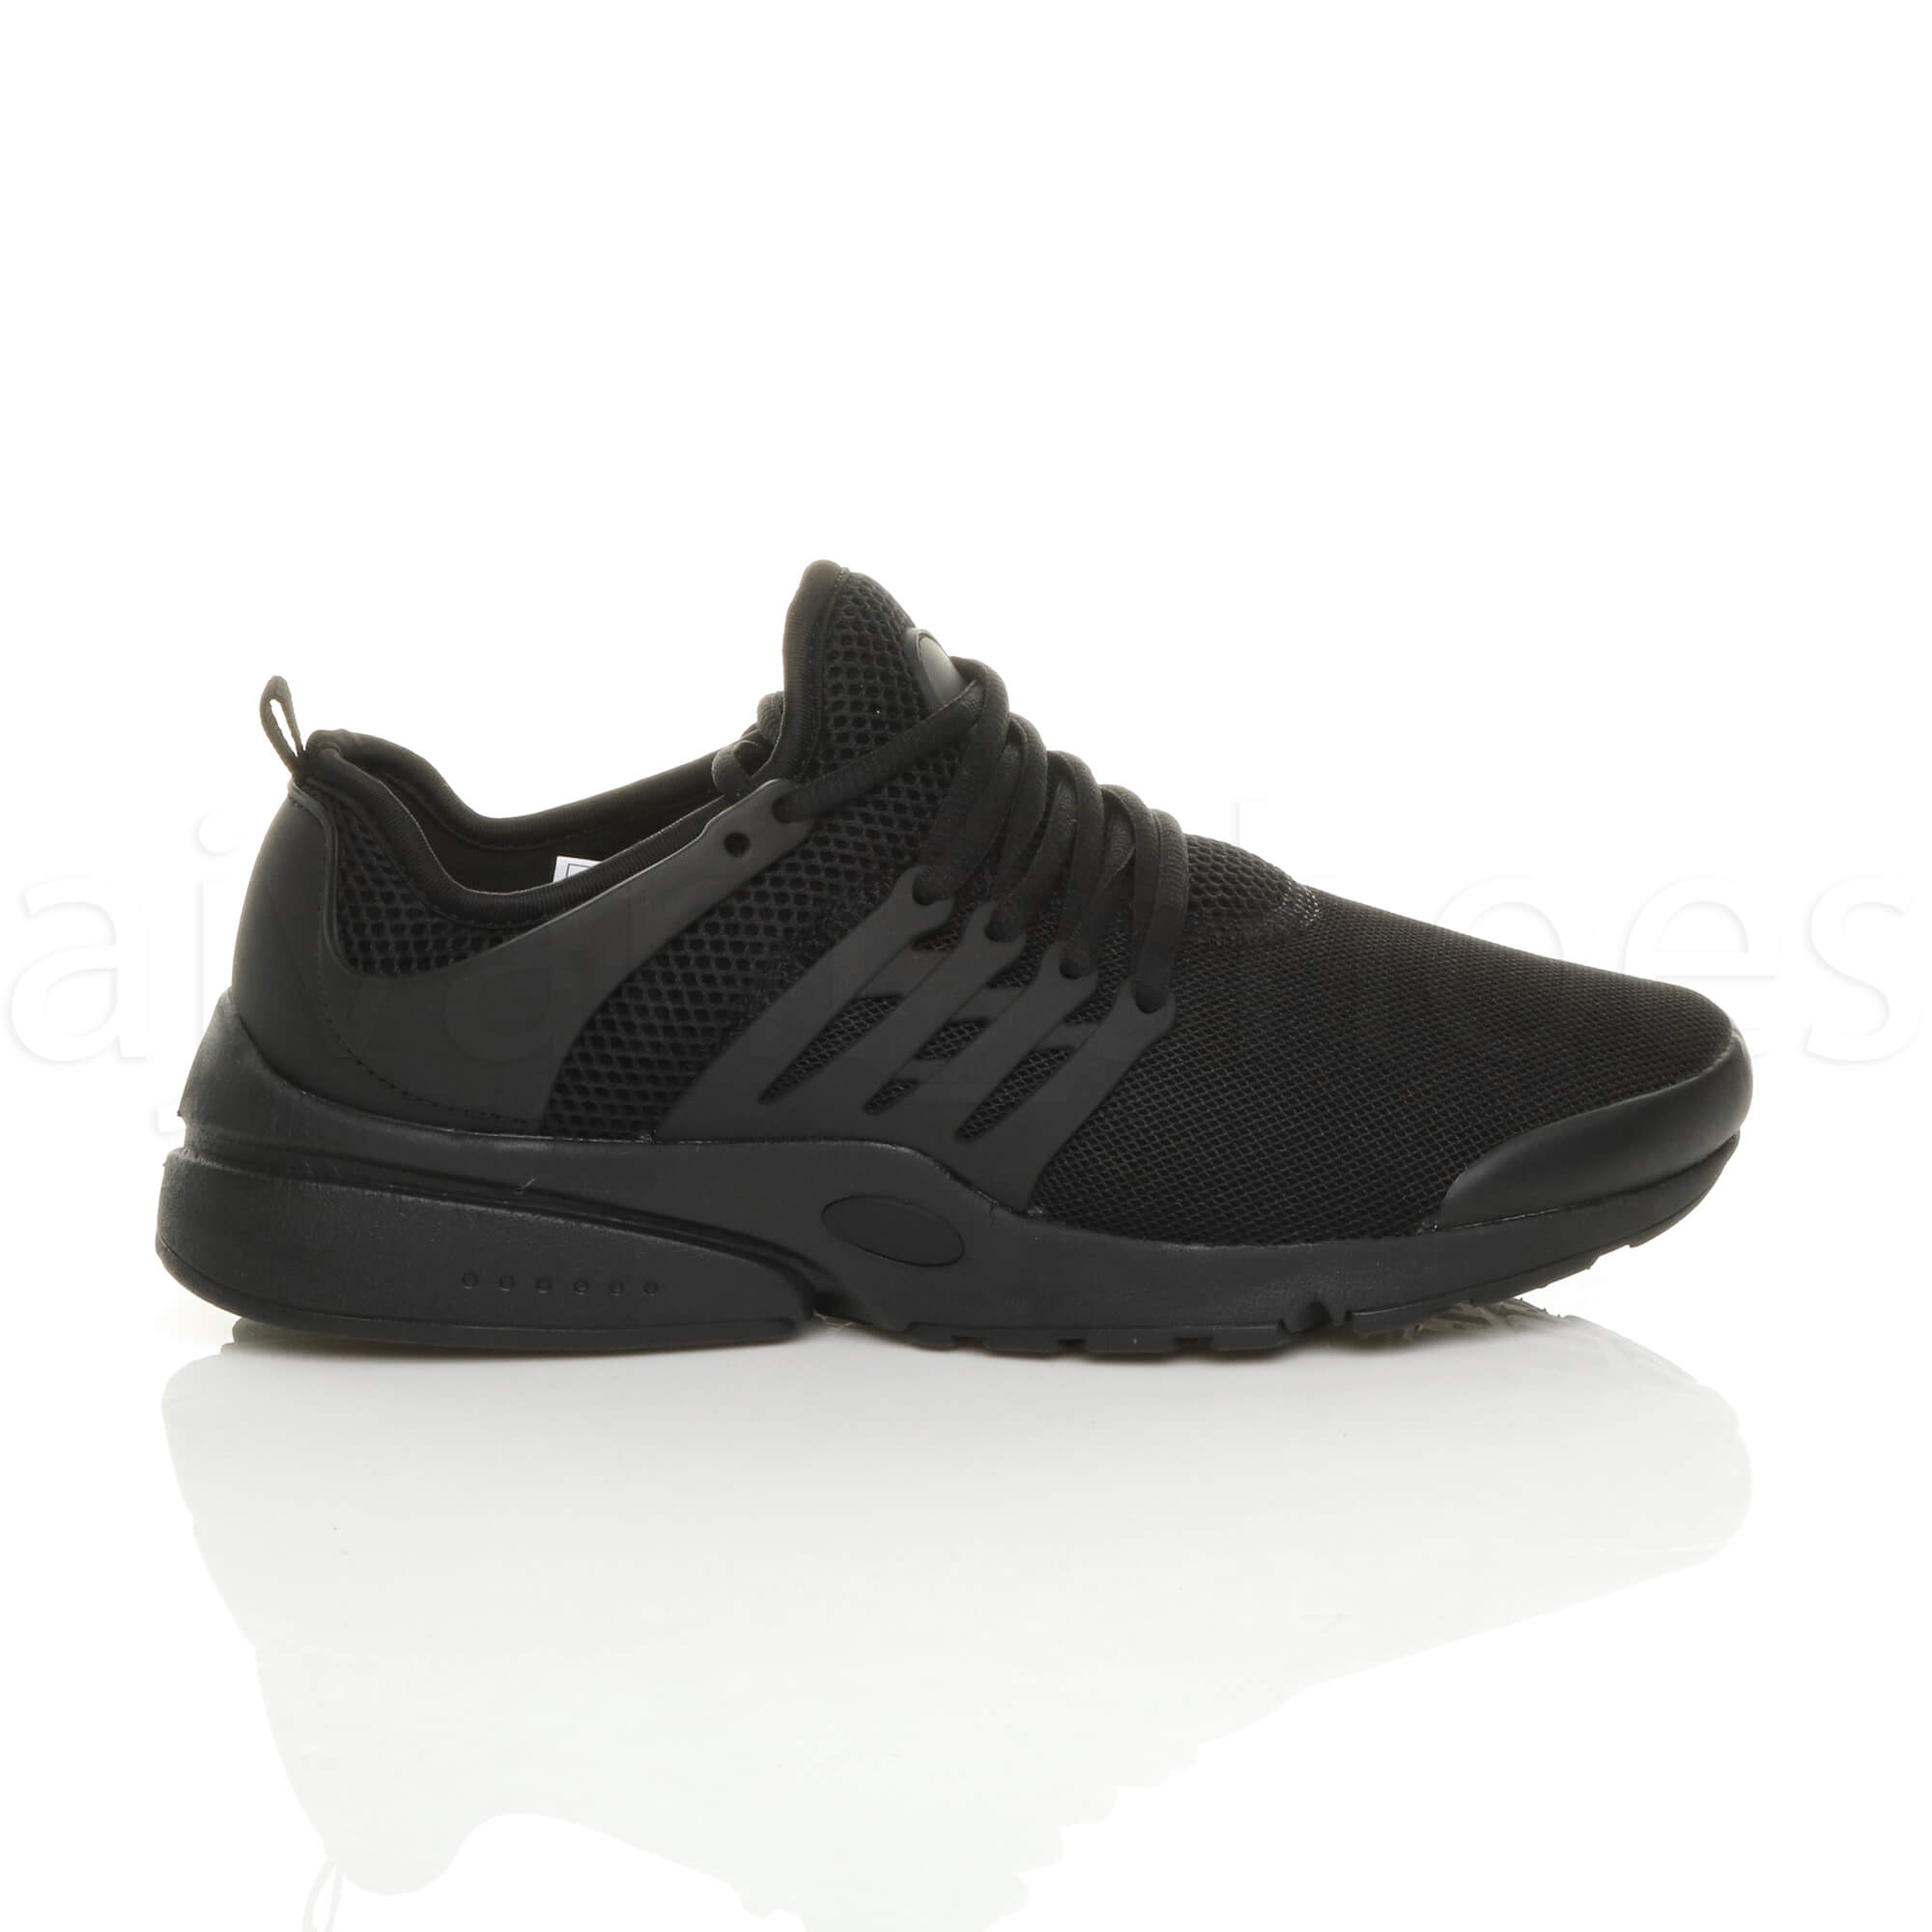 MENS-LACE-UP-SPORTS-GYM-FITNESS-RUNNING-FLEXIBLE-TRAINERS-CASUAL-SNEAKERS-SIZE thumbnail 3